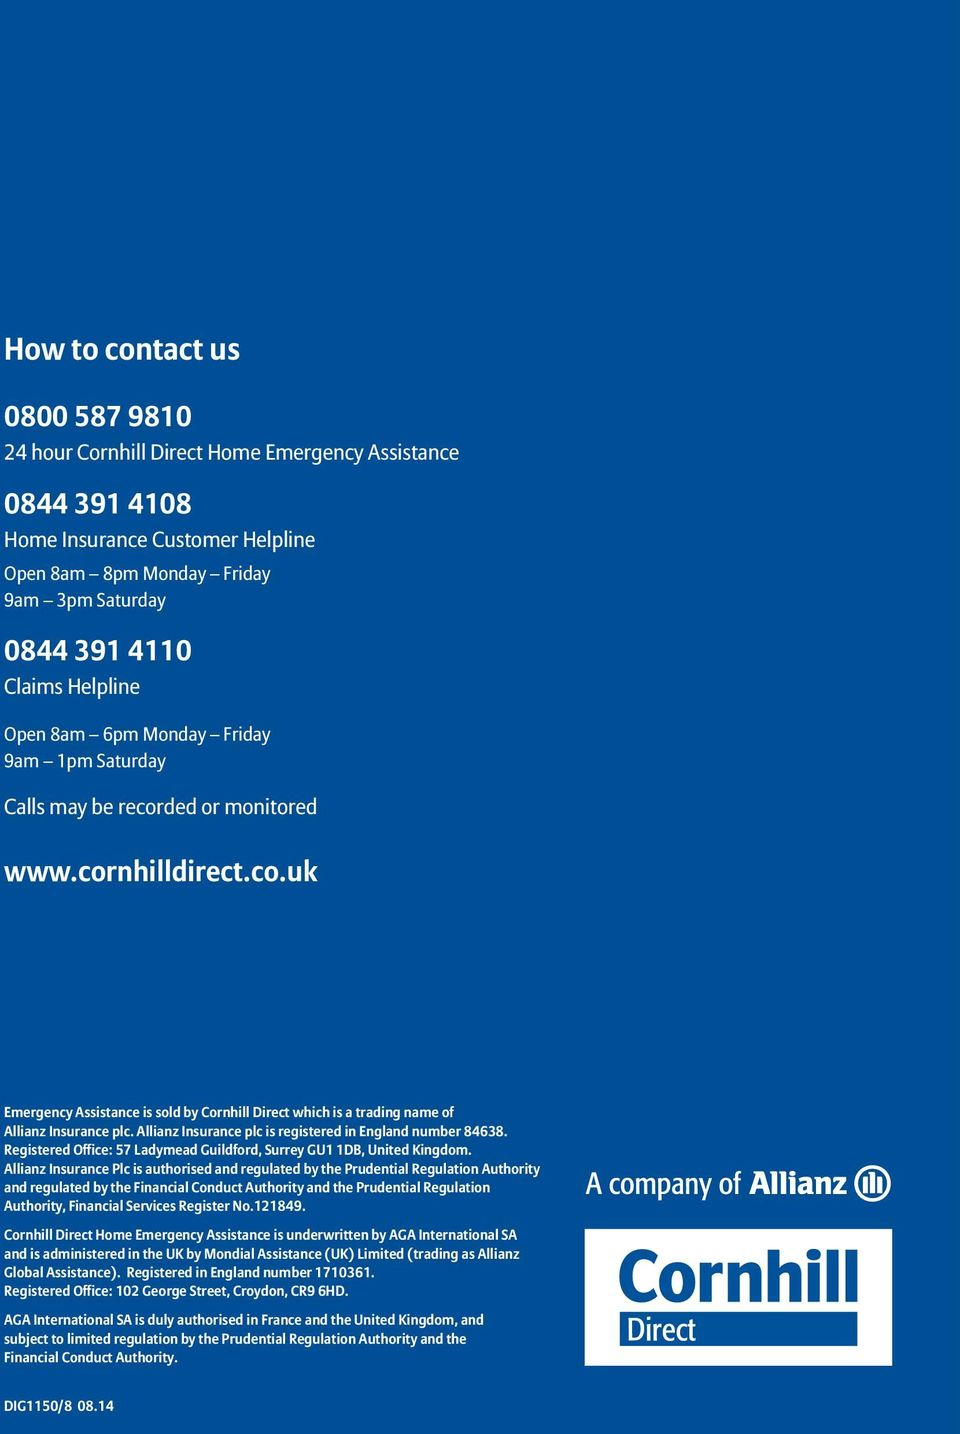 Allianz Insurance plc is registered in England number 84638. Registered Office: 57 Ladymead Guildford, Surrey GU1 1DB, United Kingdom.